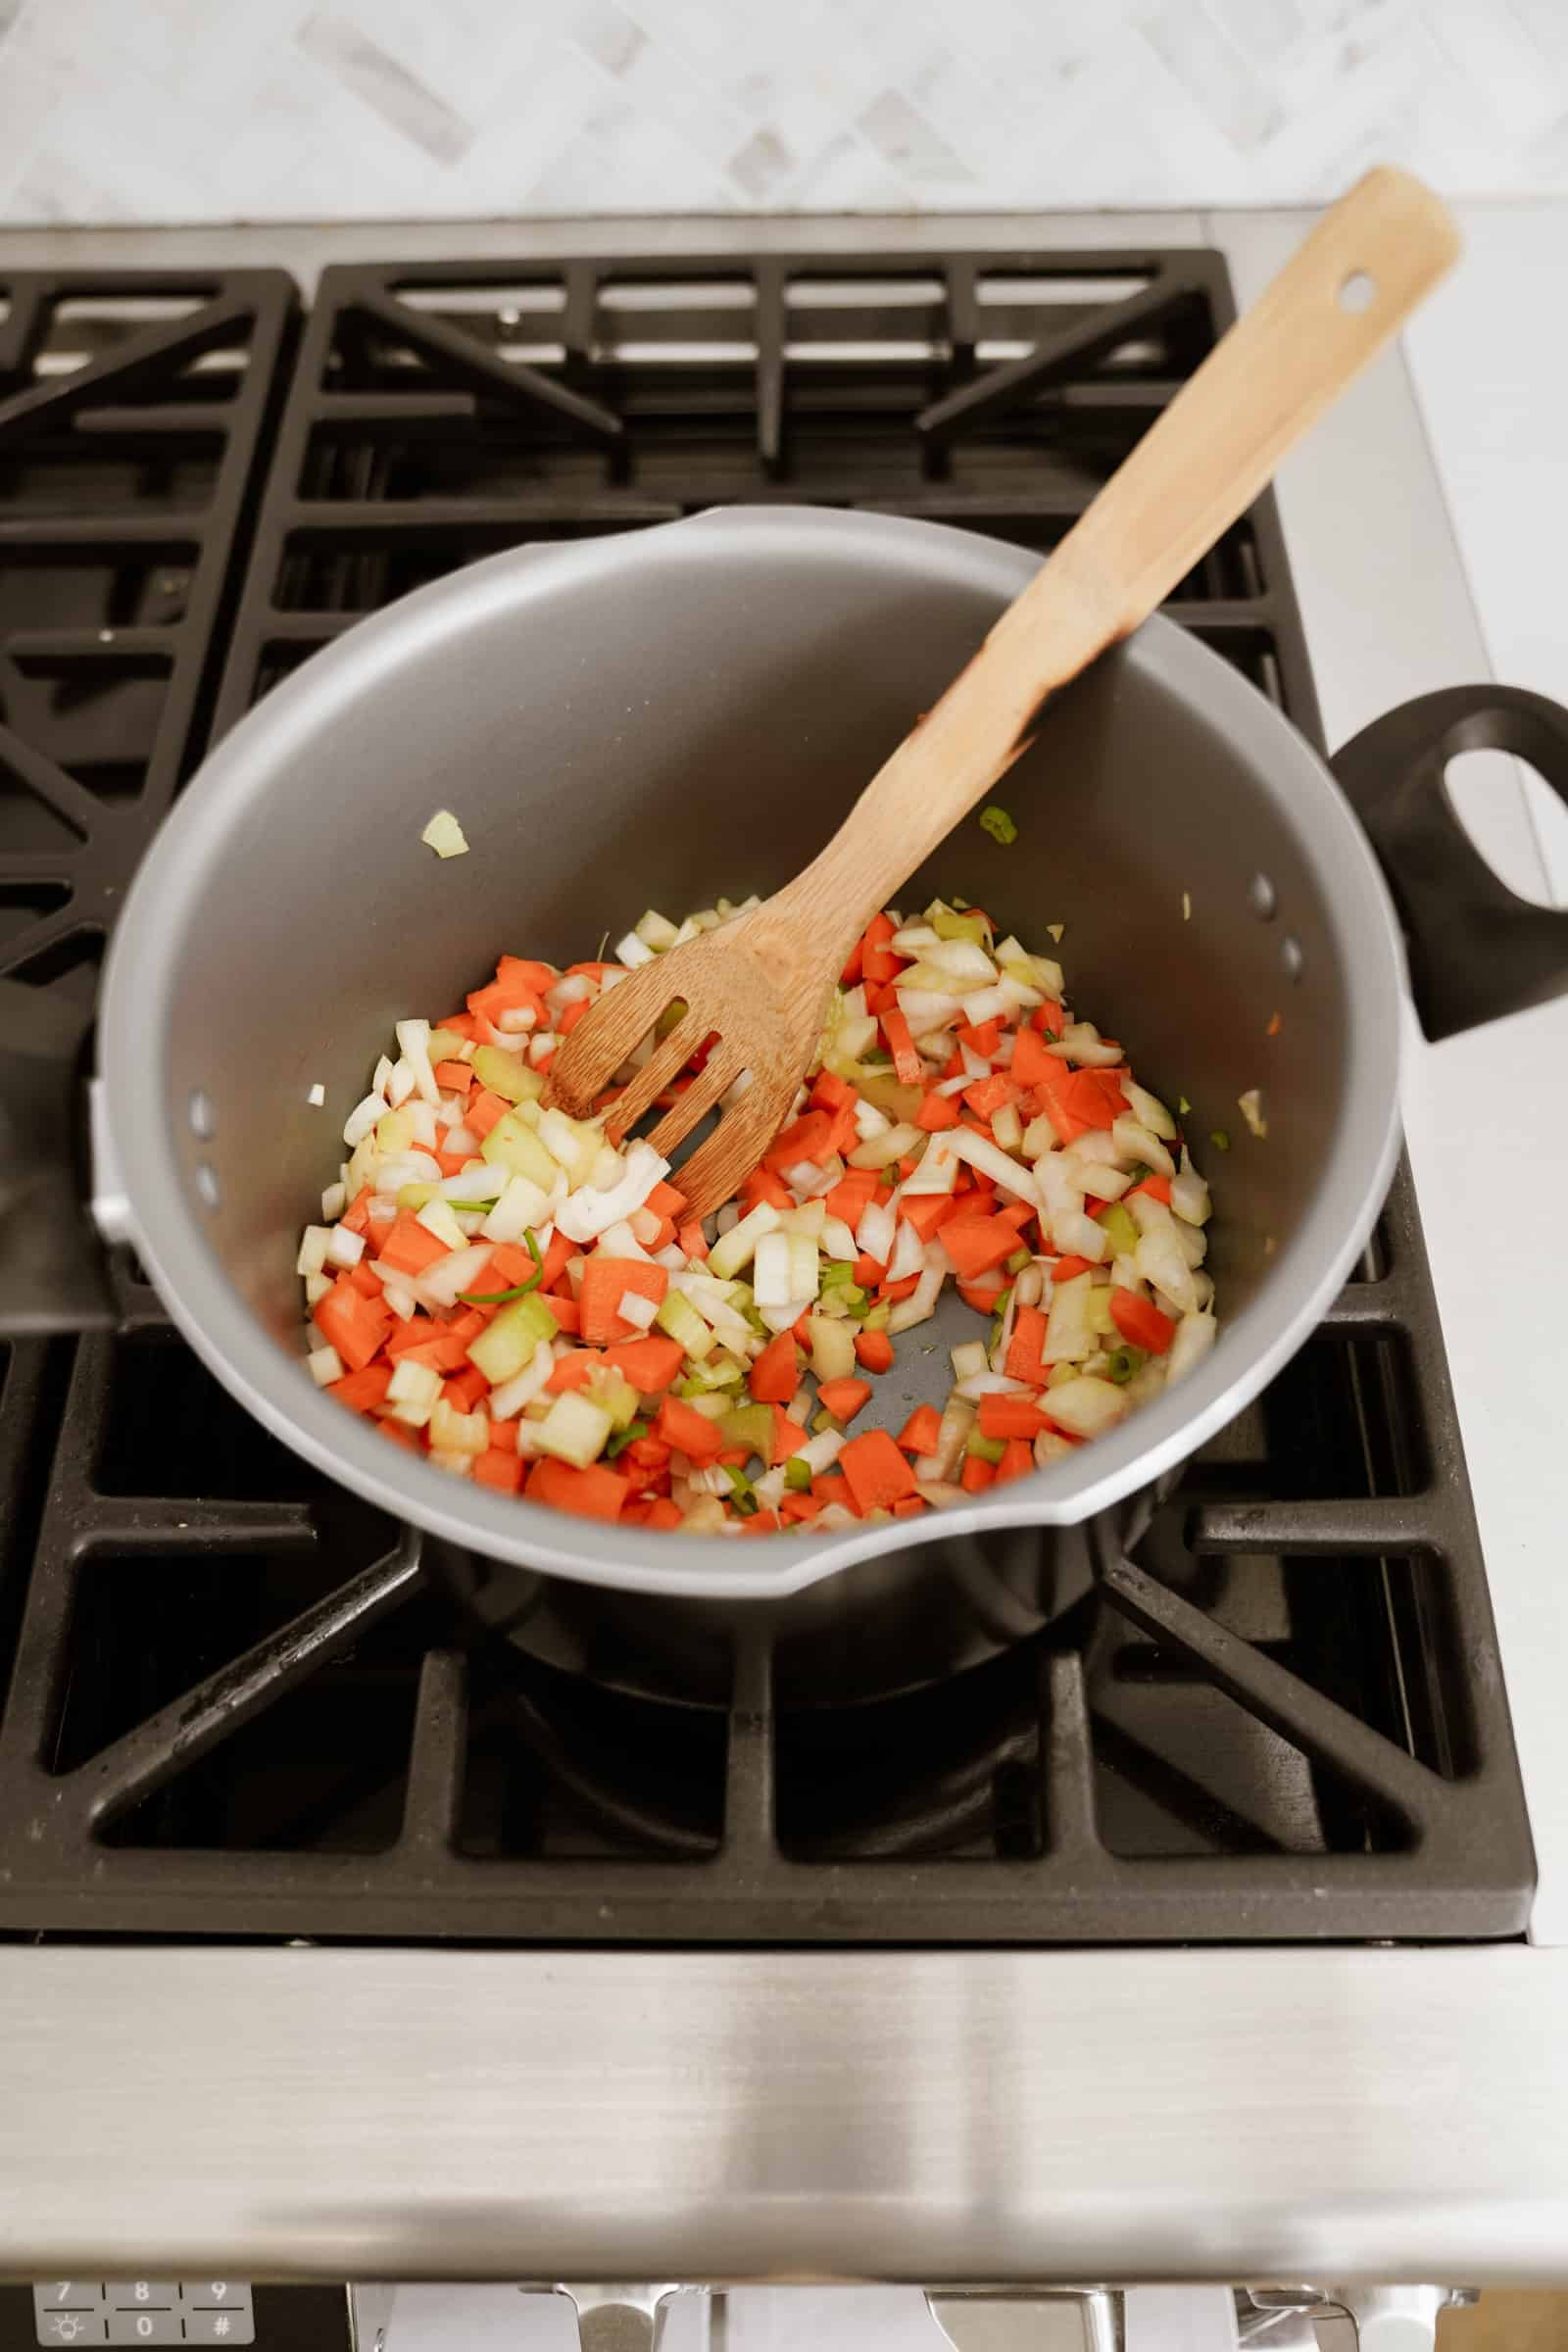 Vegetables in a pot on the stove